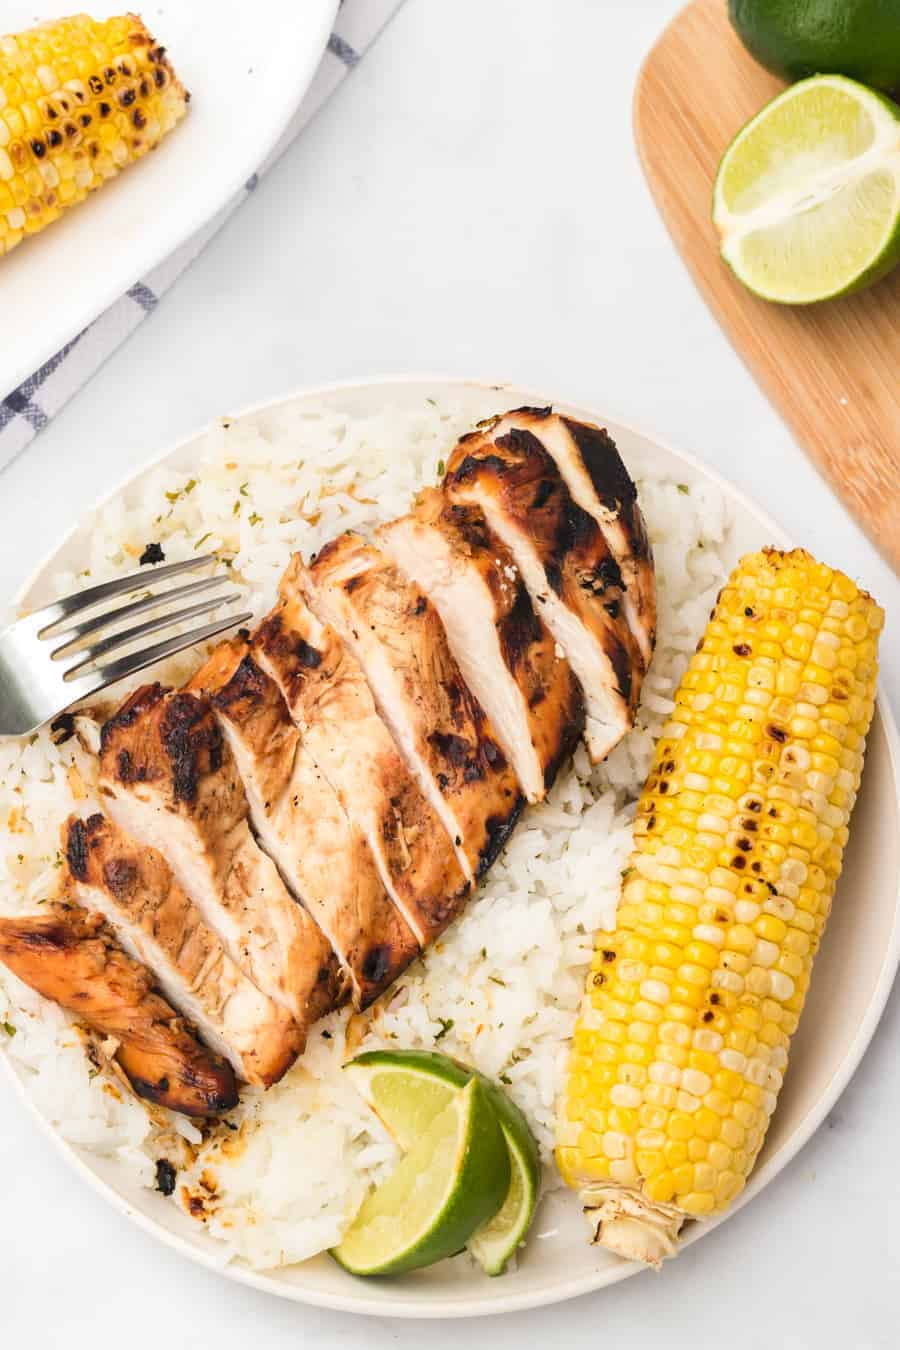 Grilled honey lime chicken breast is bright, sweet, and smoky, and is just as delicious on its own as a main dish as it is on top of salads, tacos, or anything else!